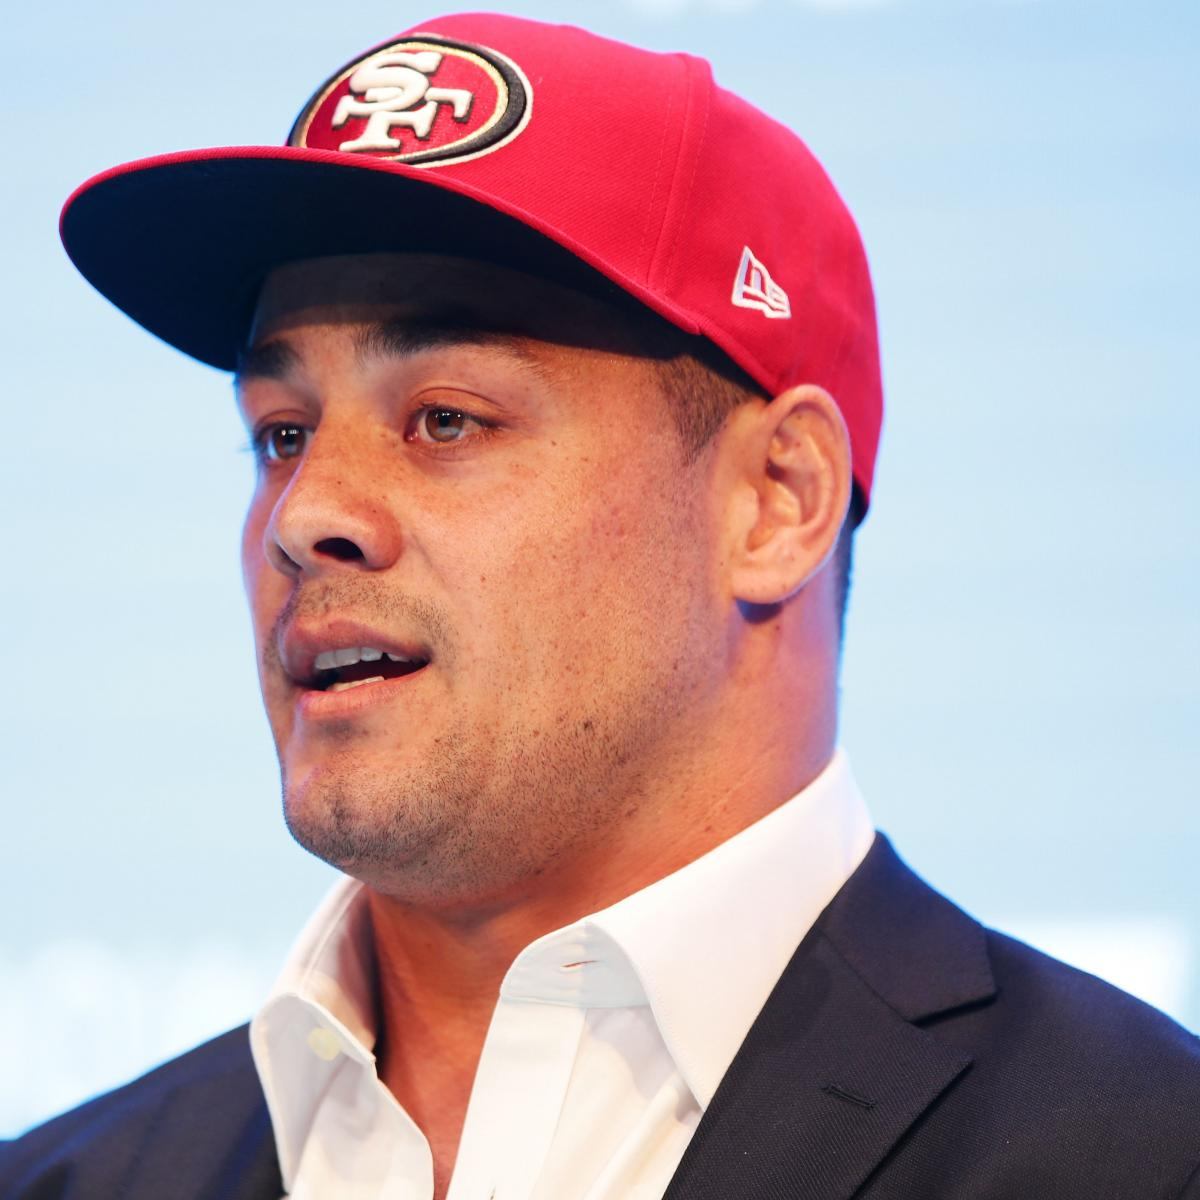 Rugby League Rules Nfl: Jarryd Hayne: How 10 Other Rugby League Players Fared In